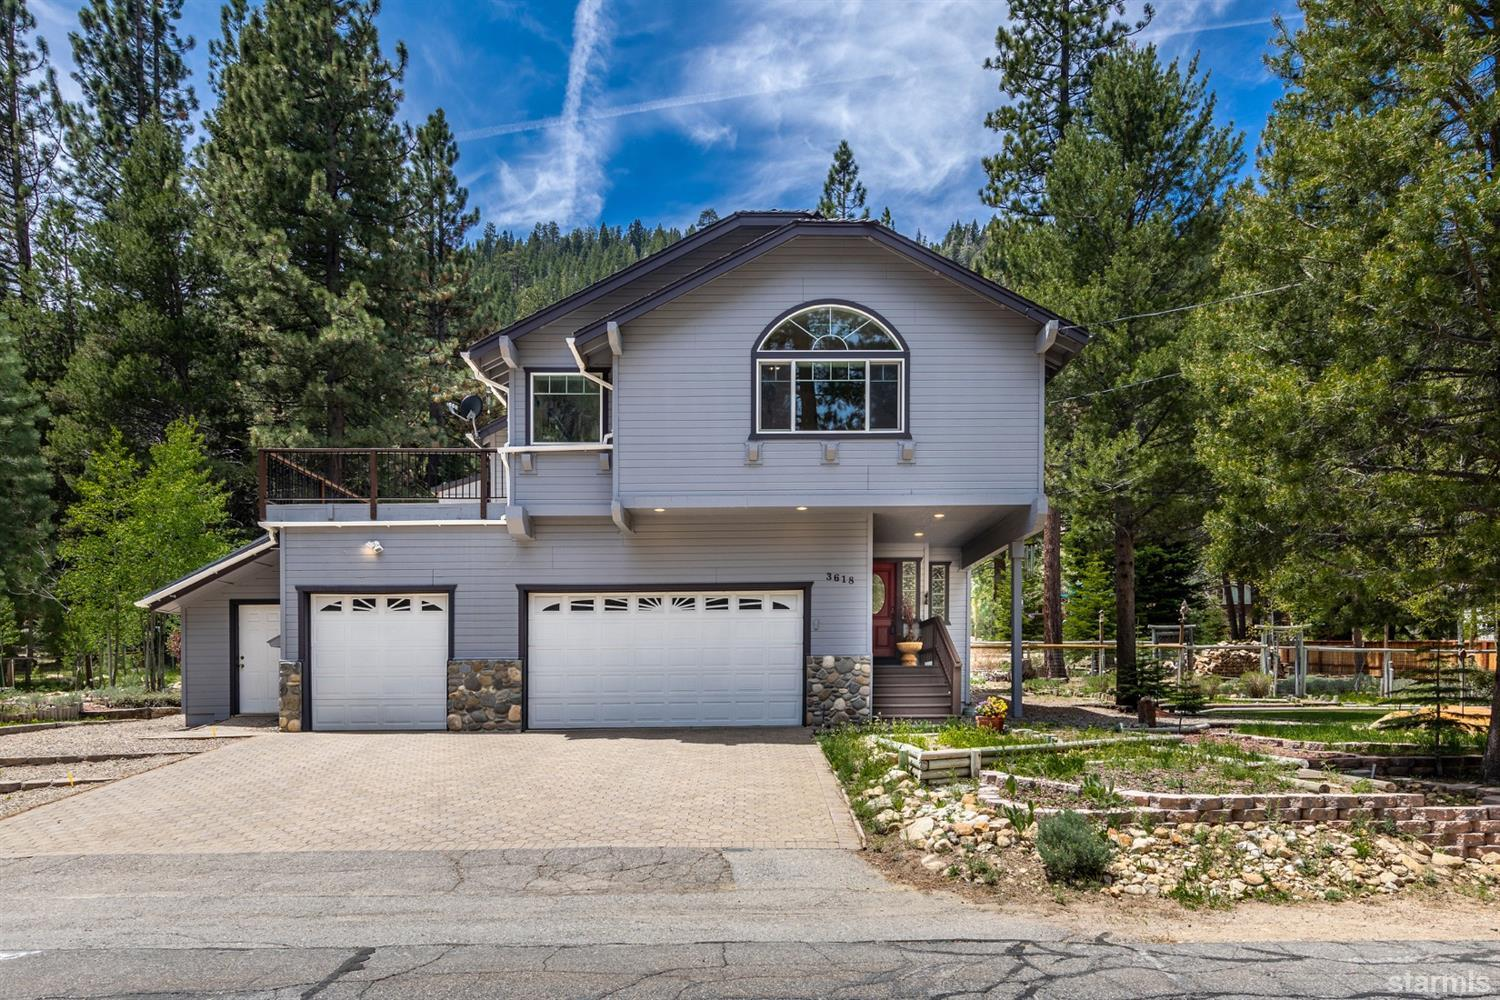 Image for 3618 Upper Truckee Road, South Lake Tahoe, CA 96150